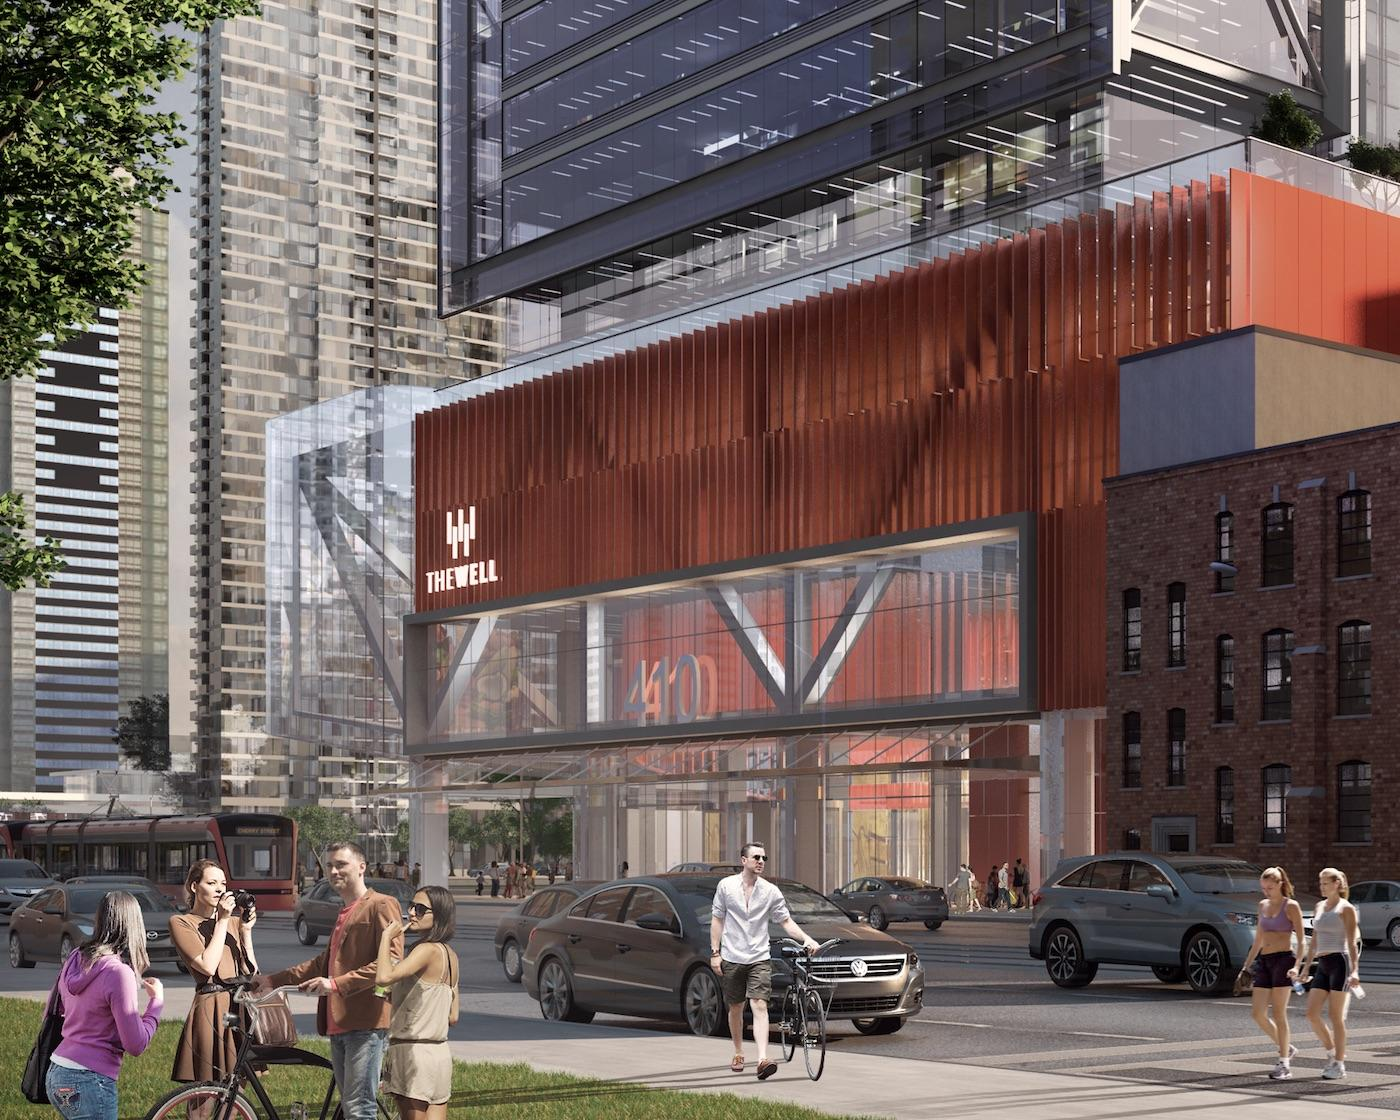 the-well-condos-toronto-tridel-444-front-st-w-for-sale-13.jpeg